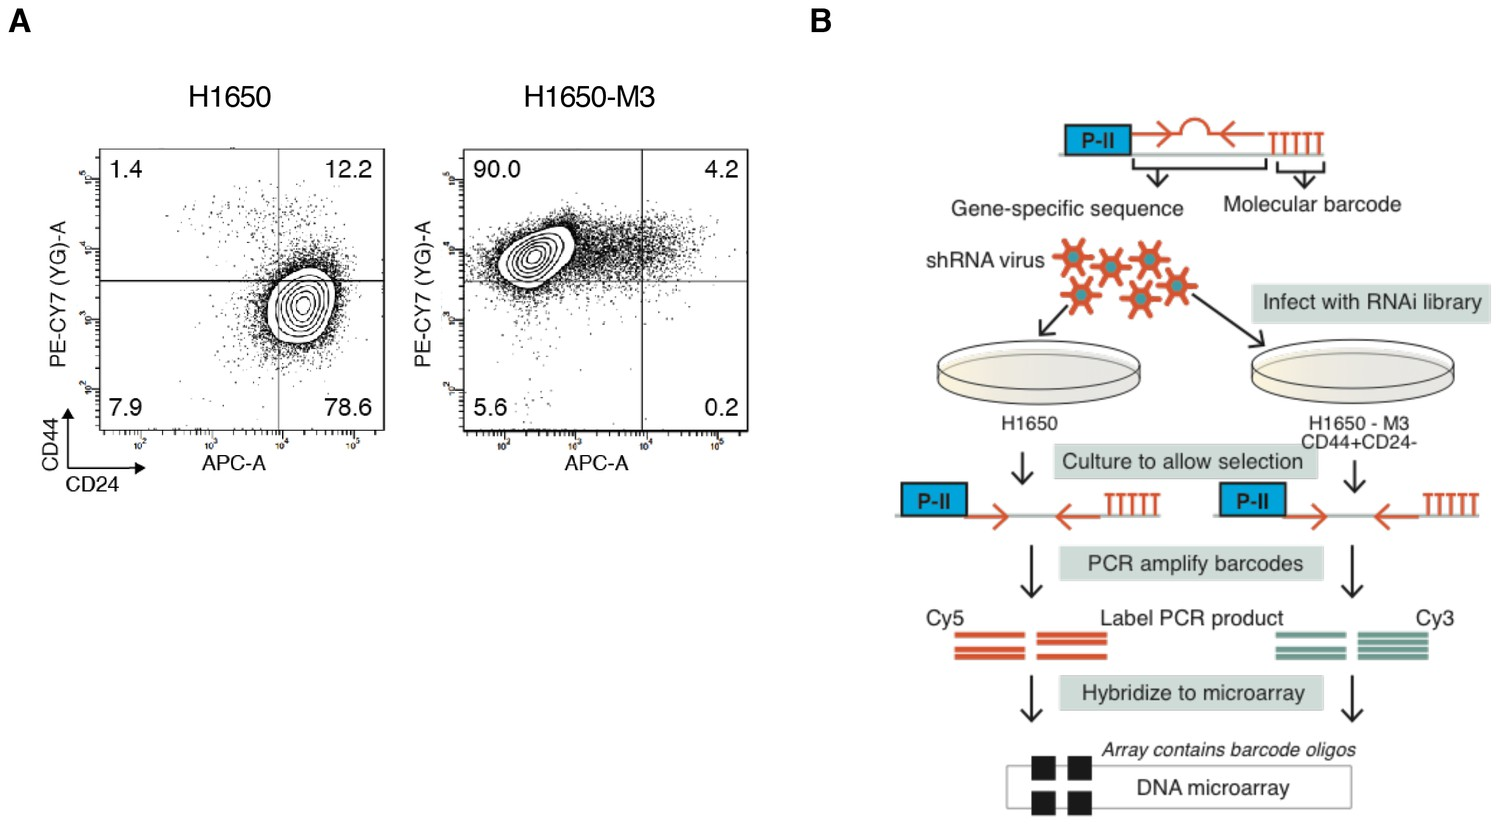 Tgf Reduces Dna Ds Break Repair Mechanisms To Heighten Genetic Aug Capacity Draw Schematics Title Bar And Youll Be Forward Screen Performed In H1650 M3 Cell Lines